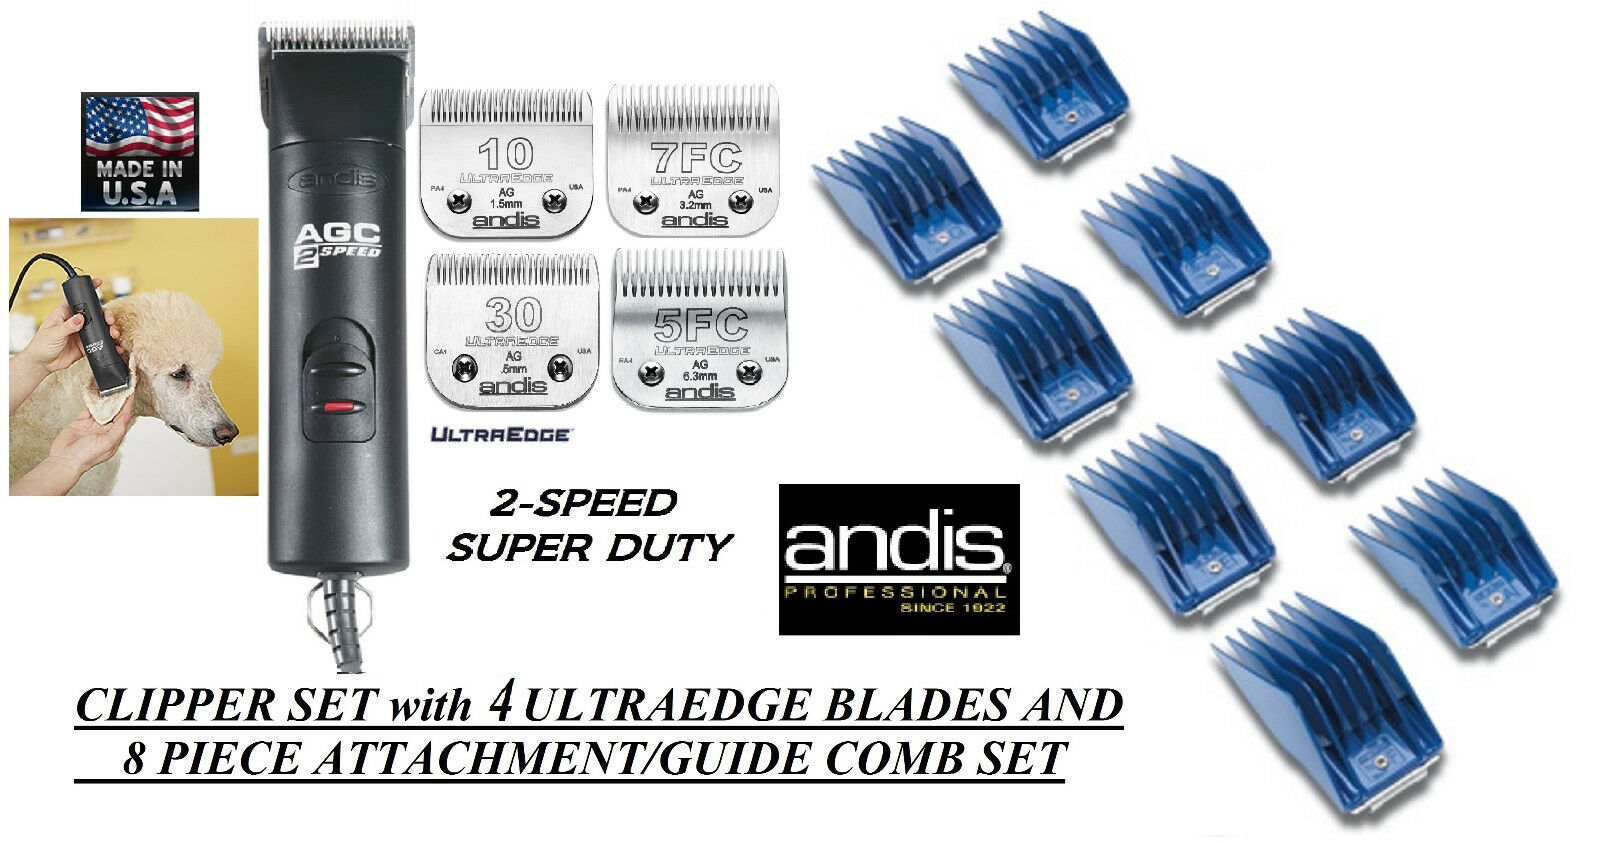 Andis SUPER Pro 2Speed Clipper,4 ULTRAEDGE BLADES,8 GUIDE COMB SET*PET Grooming